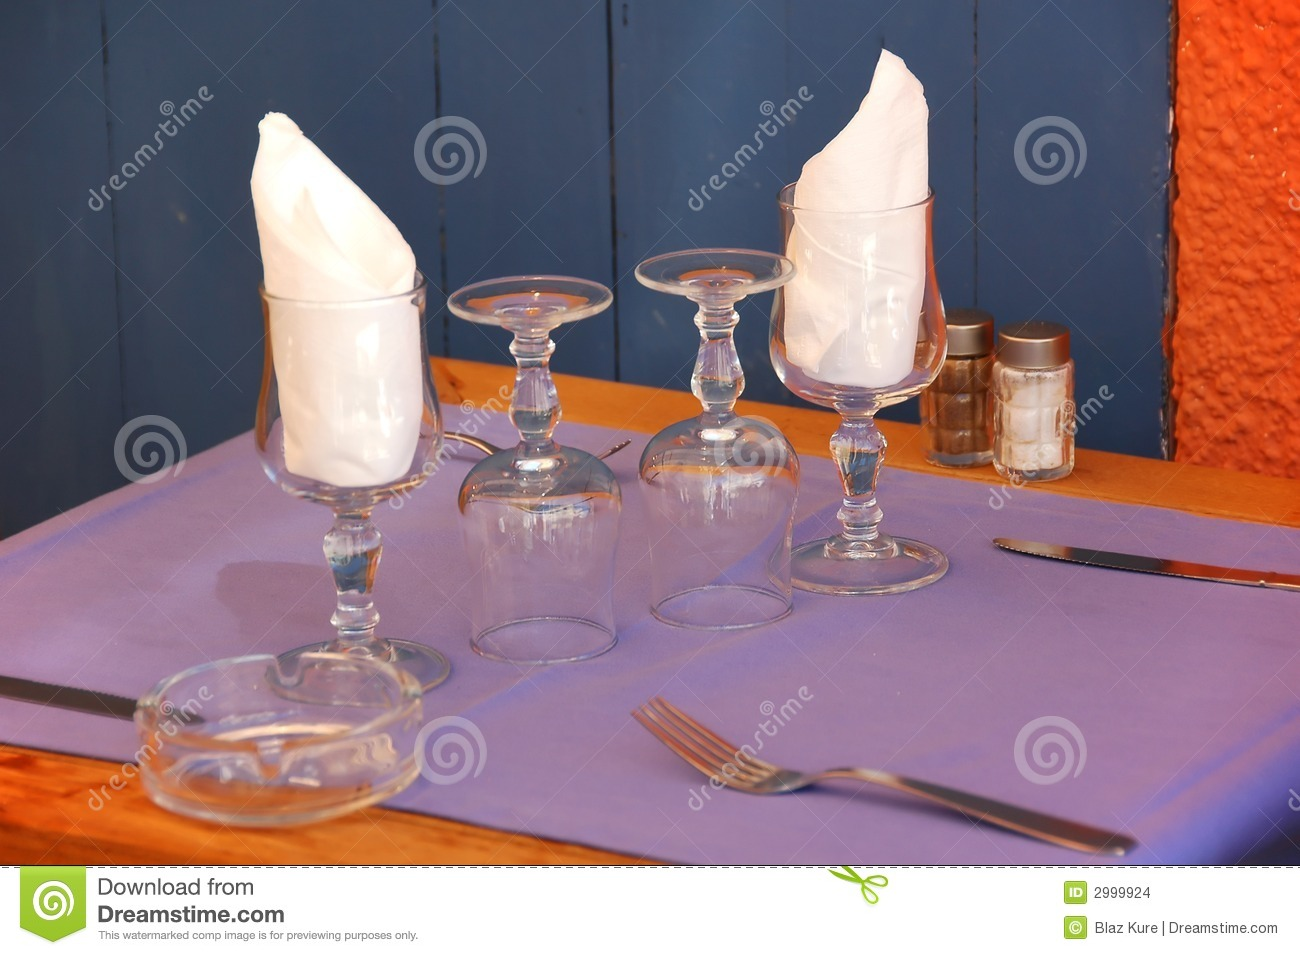 Outdoor Seaside Dining Table Cutlery Setting Royalty